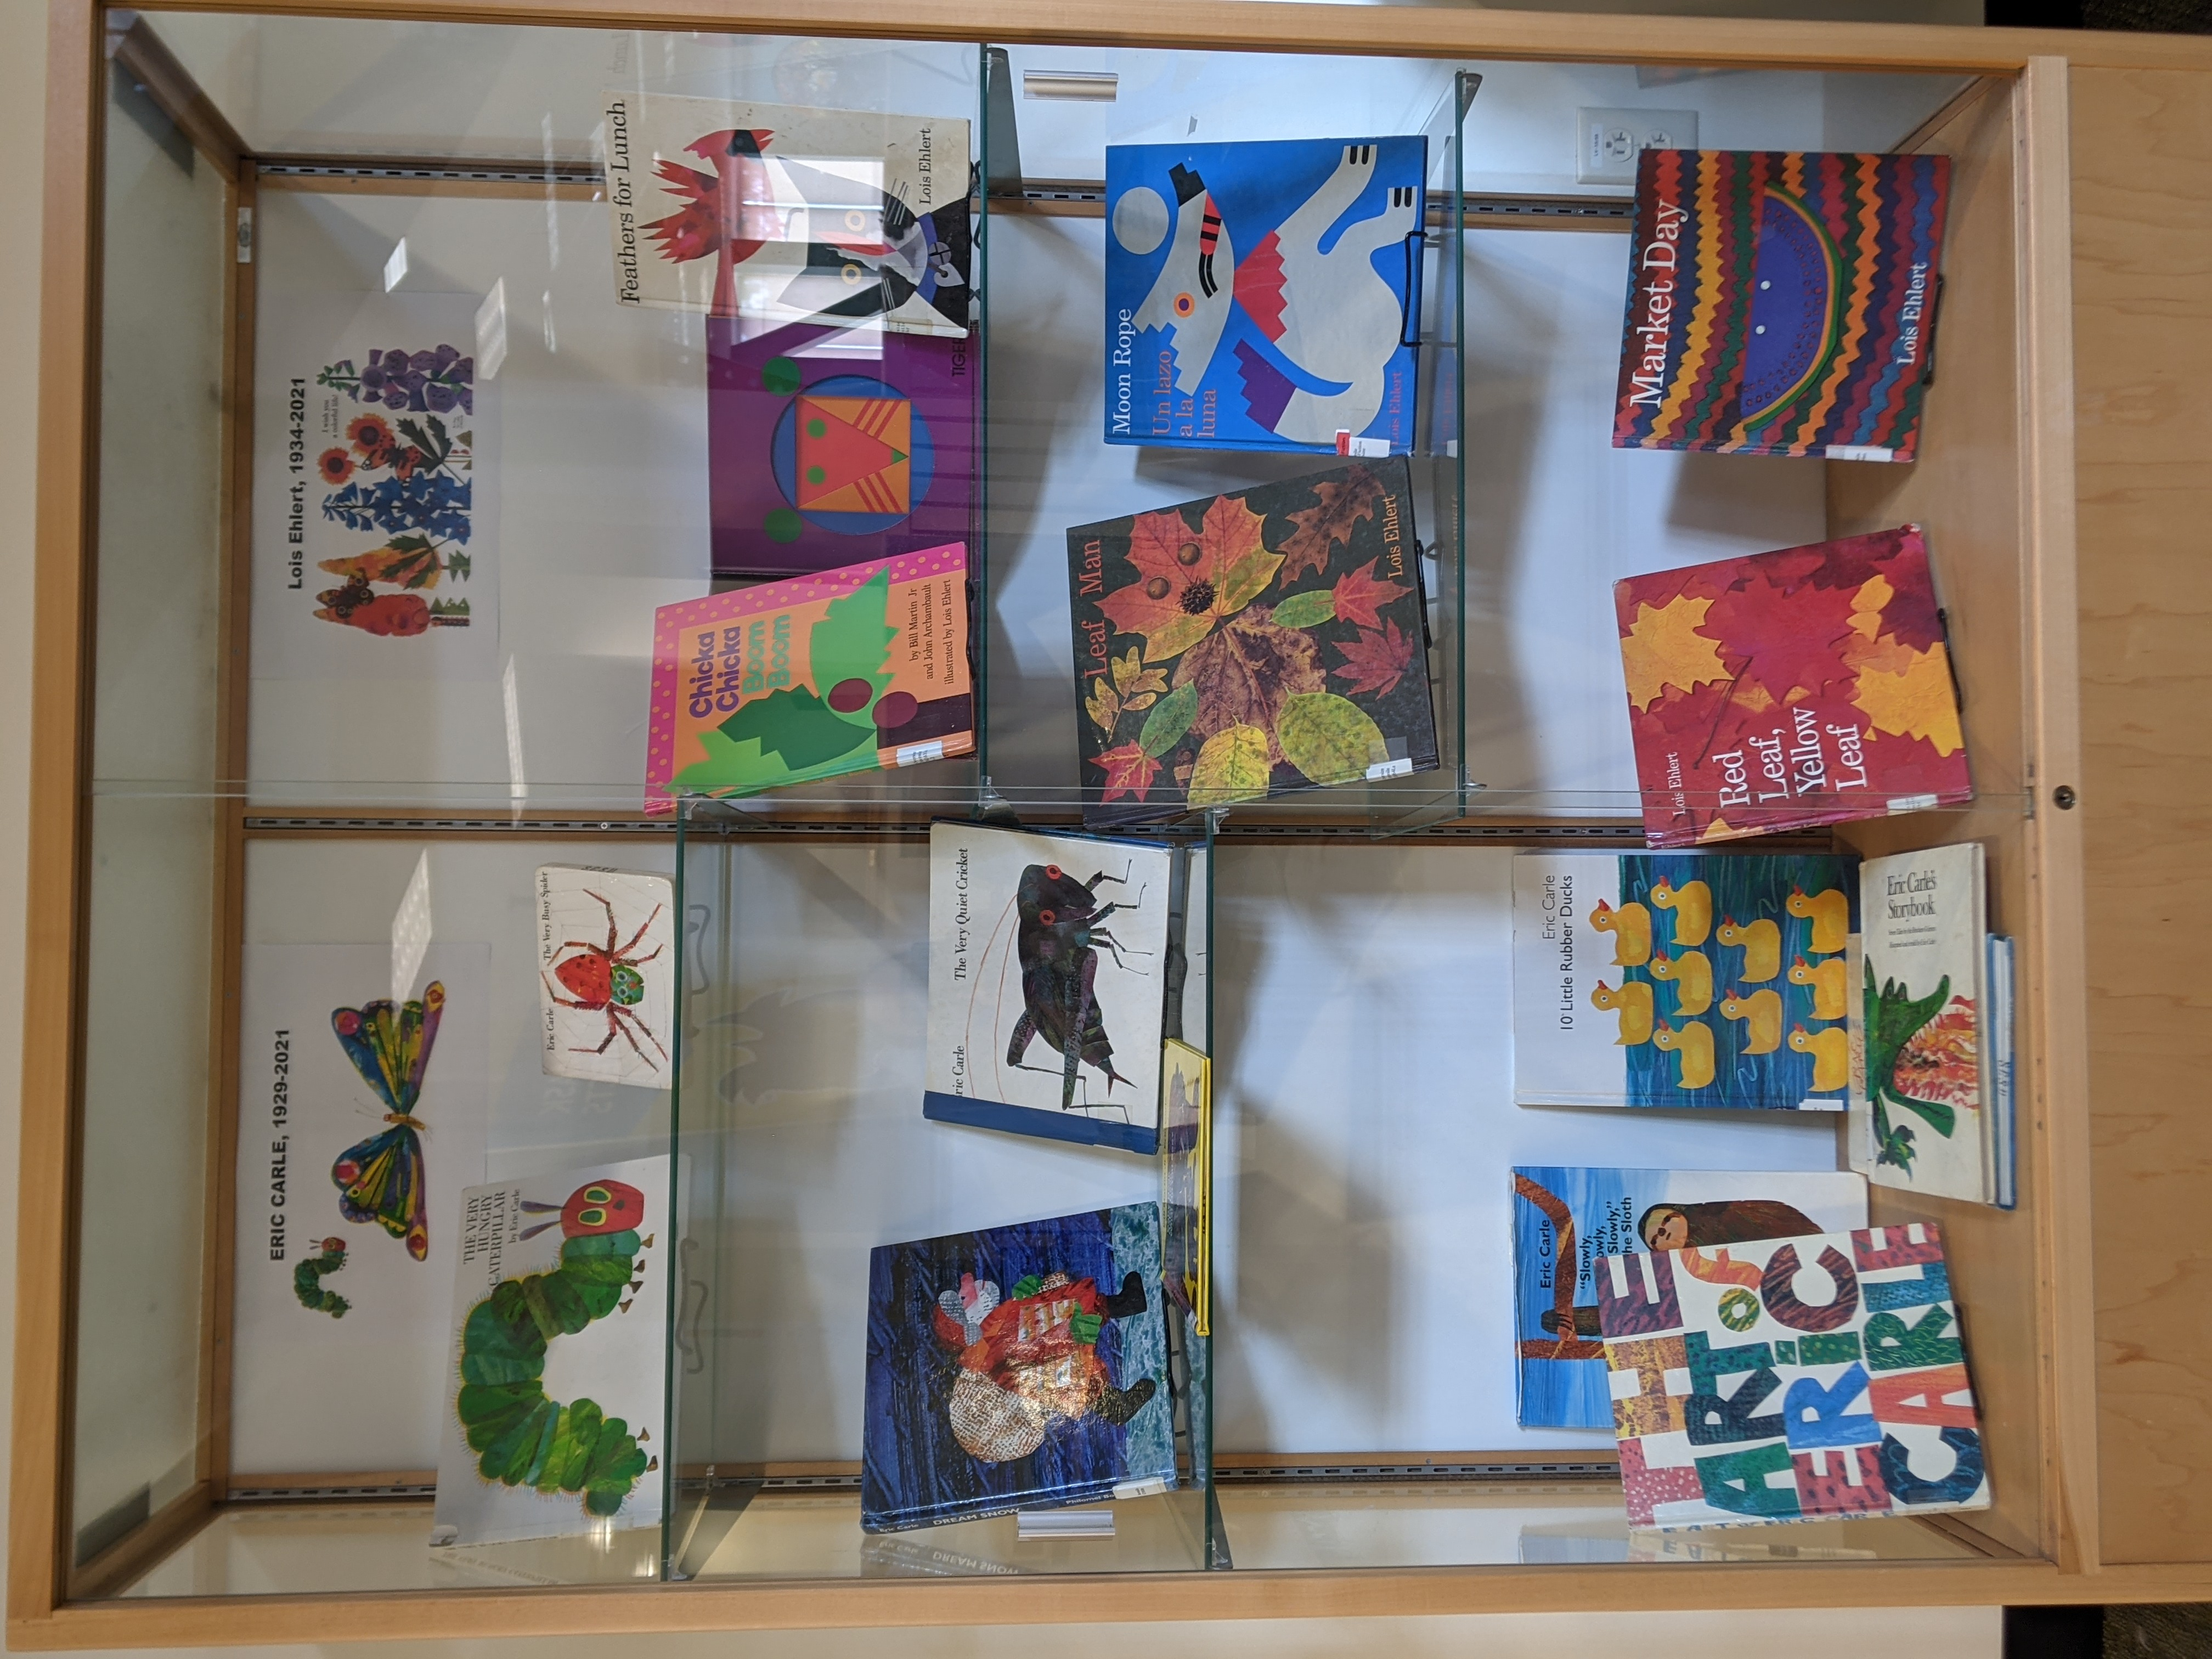 Exhibit case with books by Eric Carle and Lois Ehlert